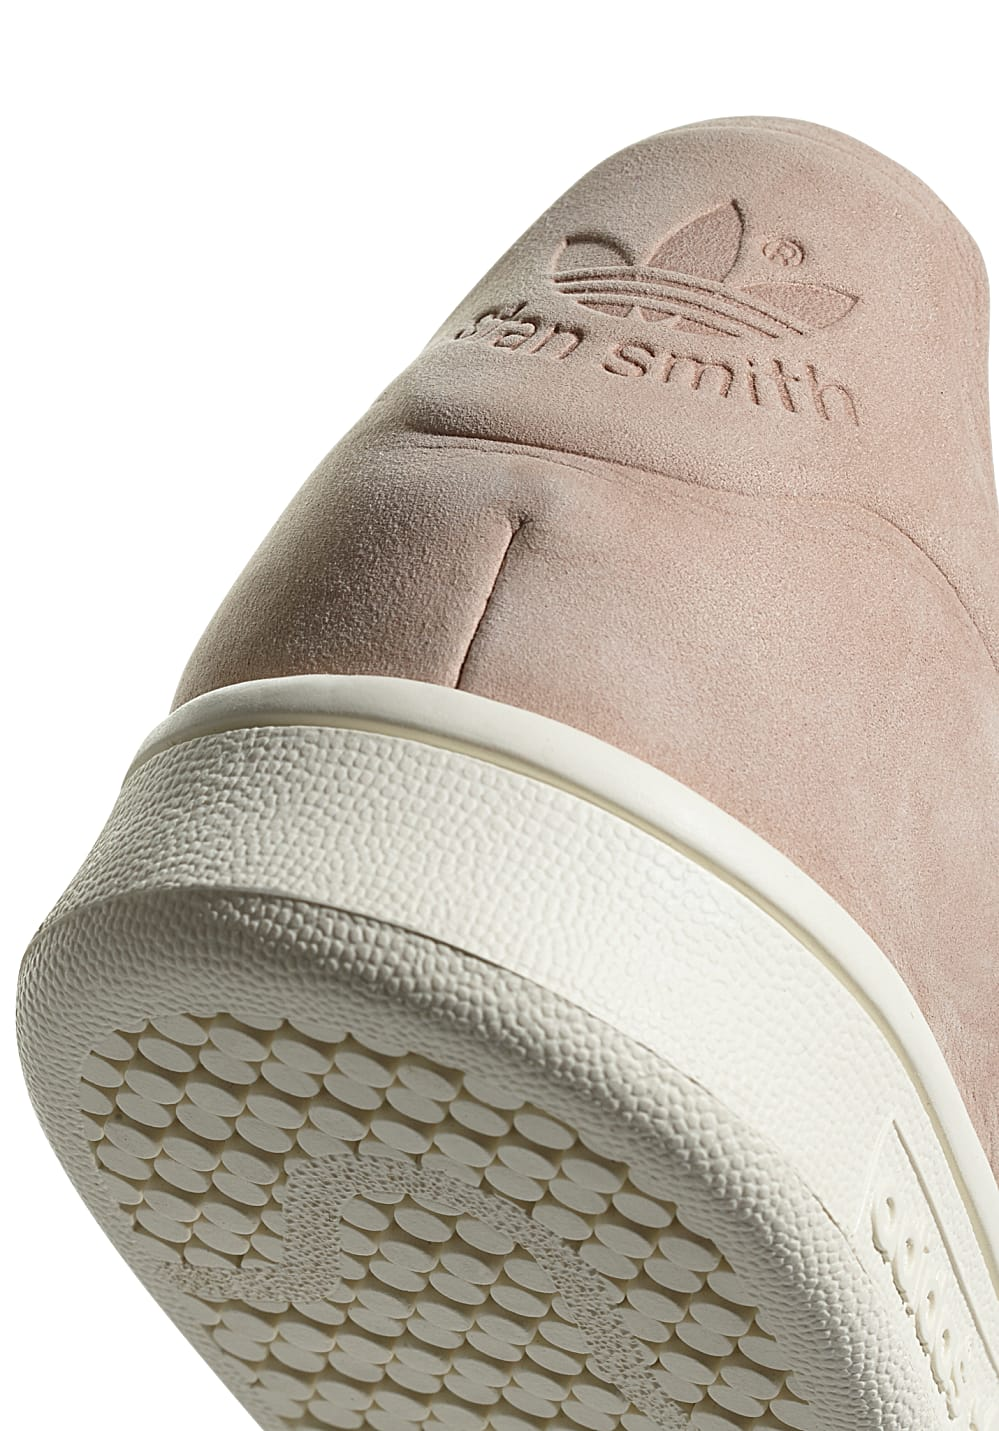 on sale 8fc77 9dfb5 ADIDAS ORIGINALS Stan Smith Nuud - Sneakers for Women - Pink